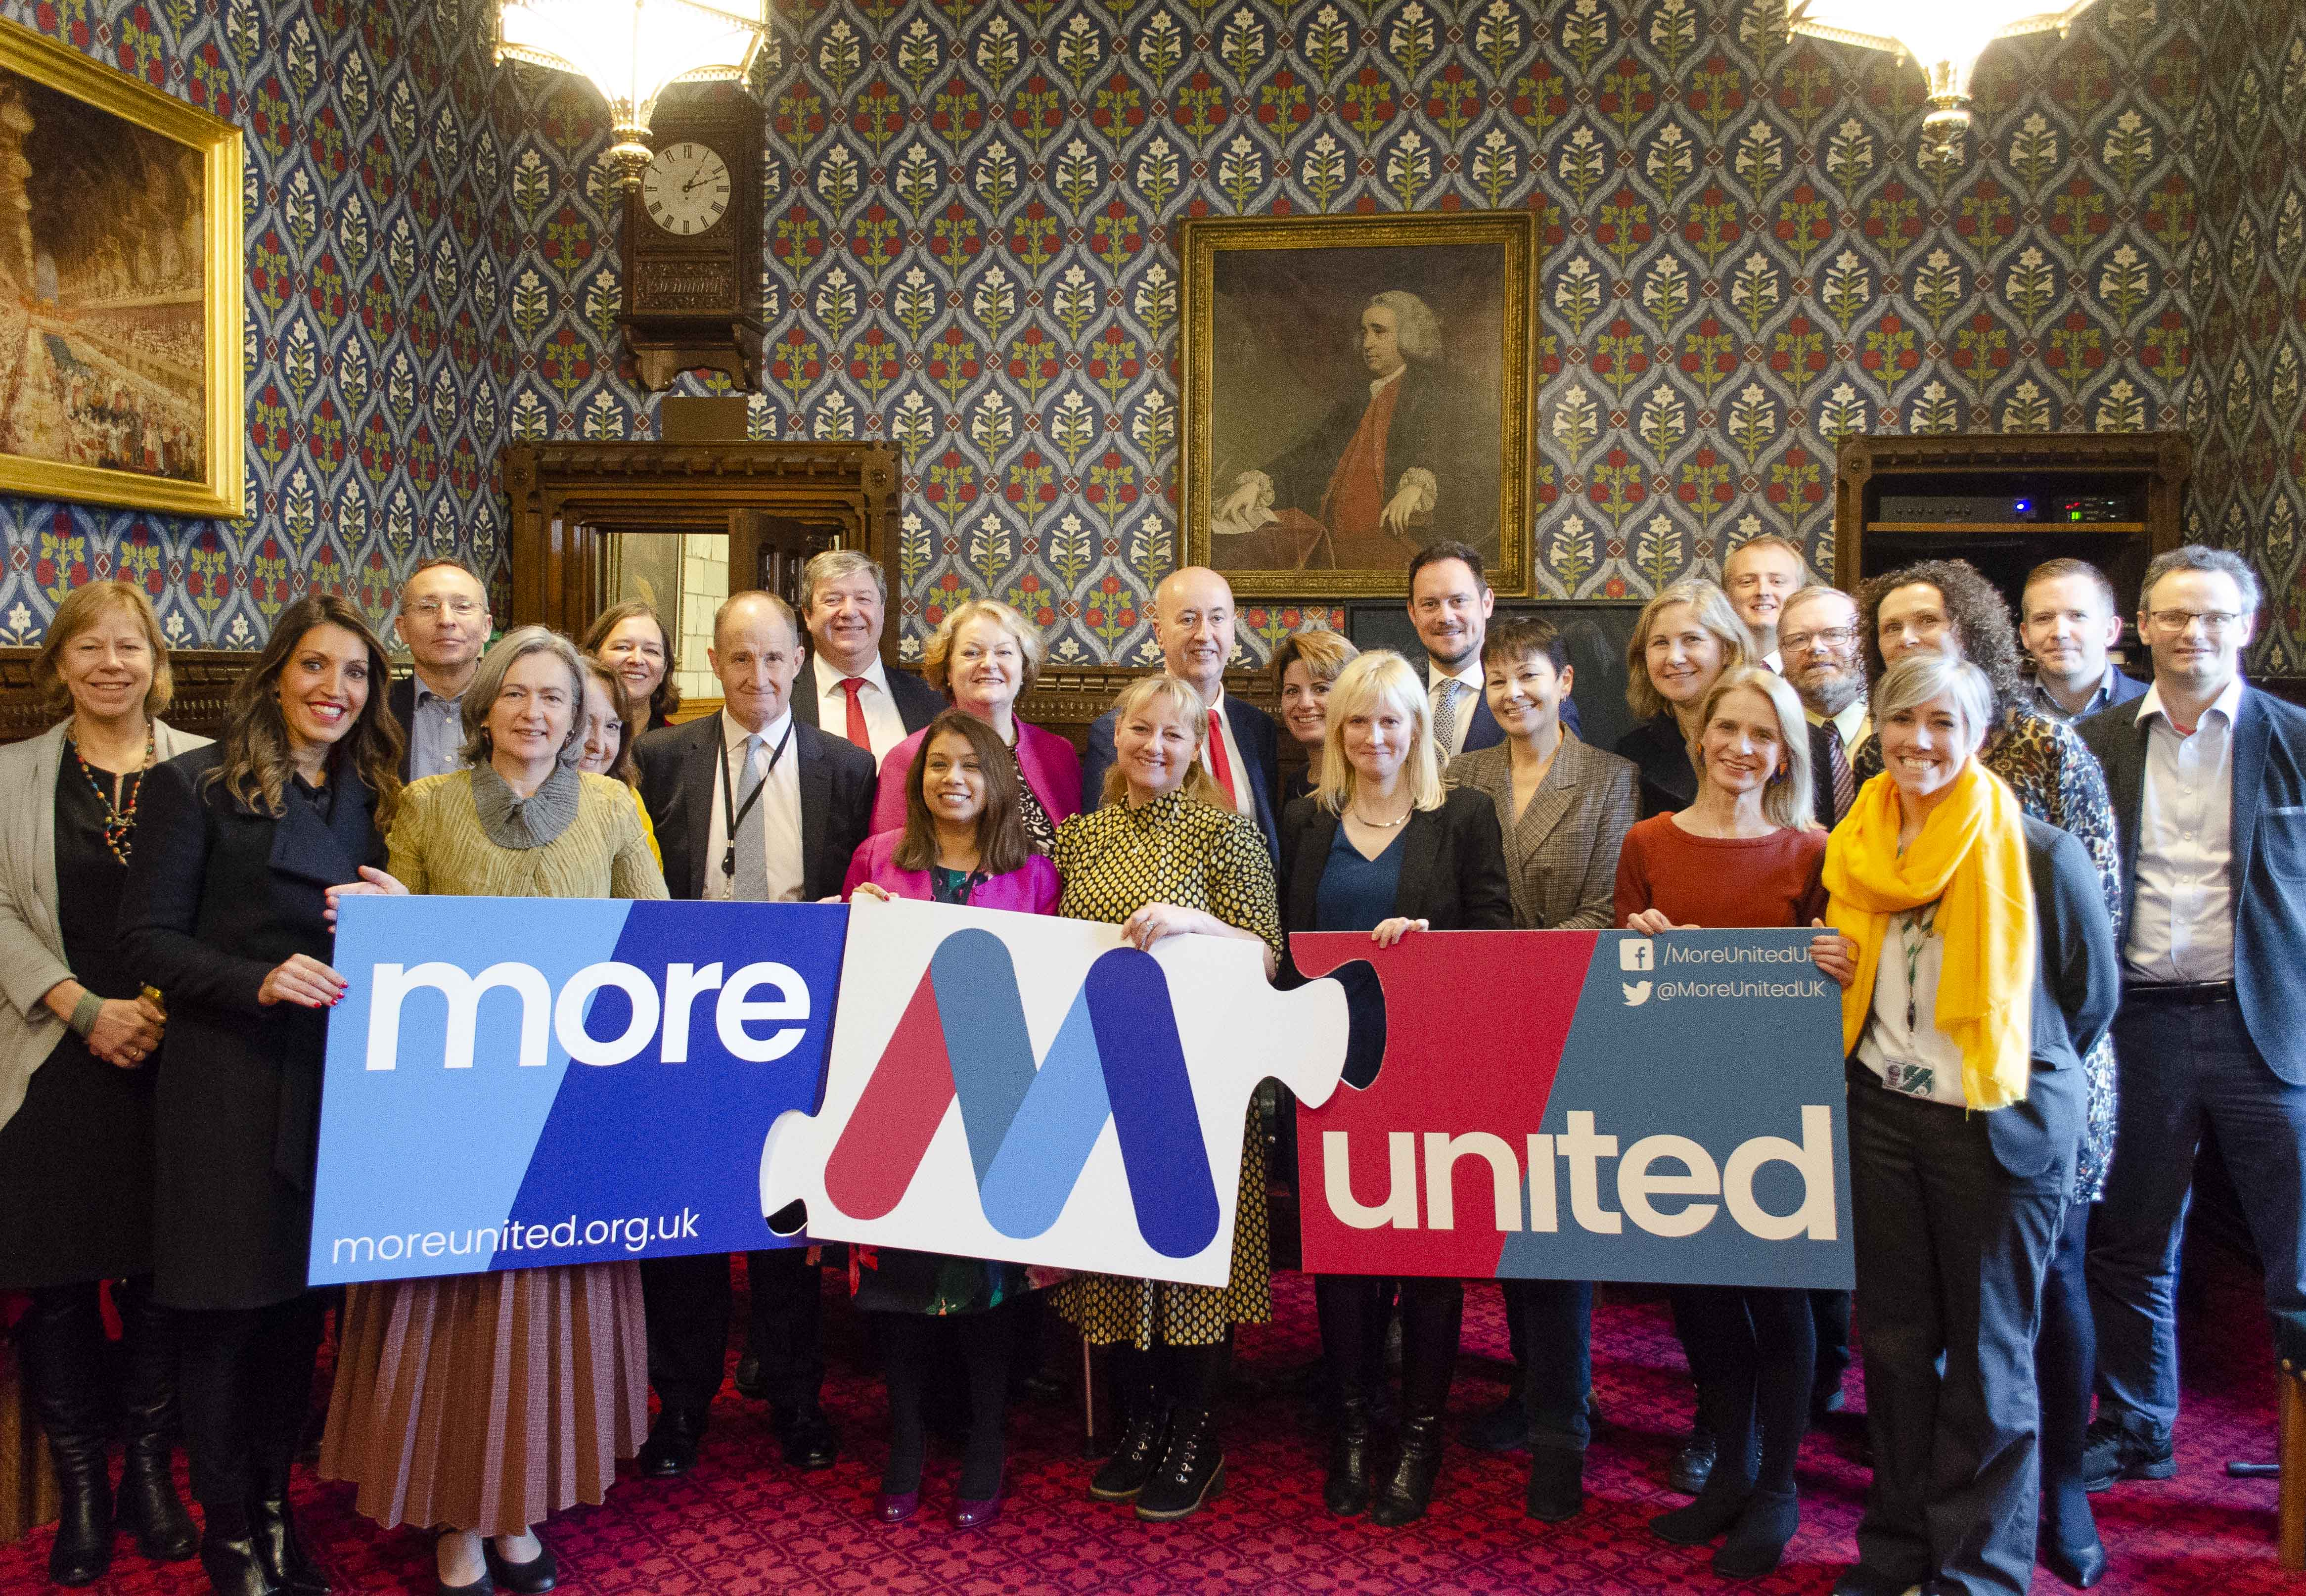 PRESS RELEASE: More United Network launch